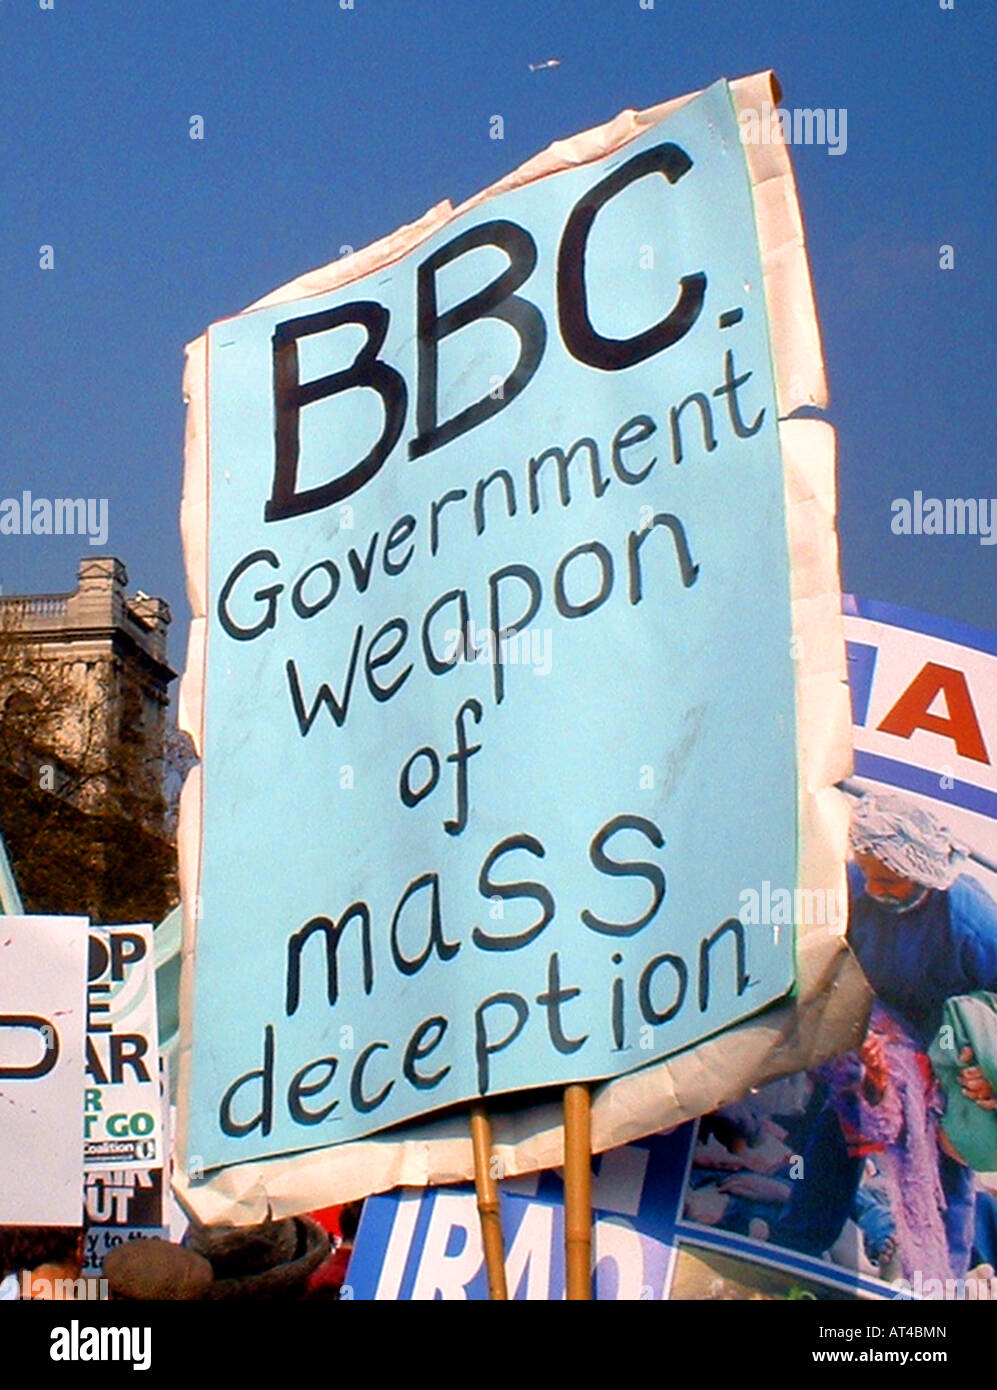 BBC bias banner at anti Iraq war demo in London Stock Photo - Alamy